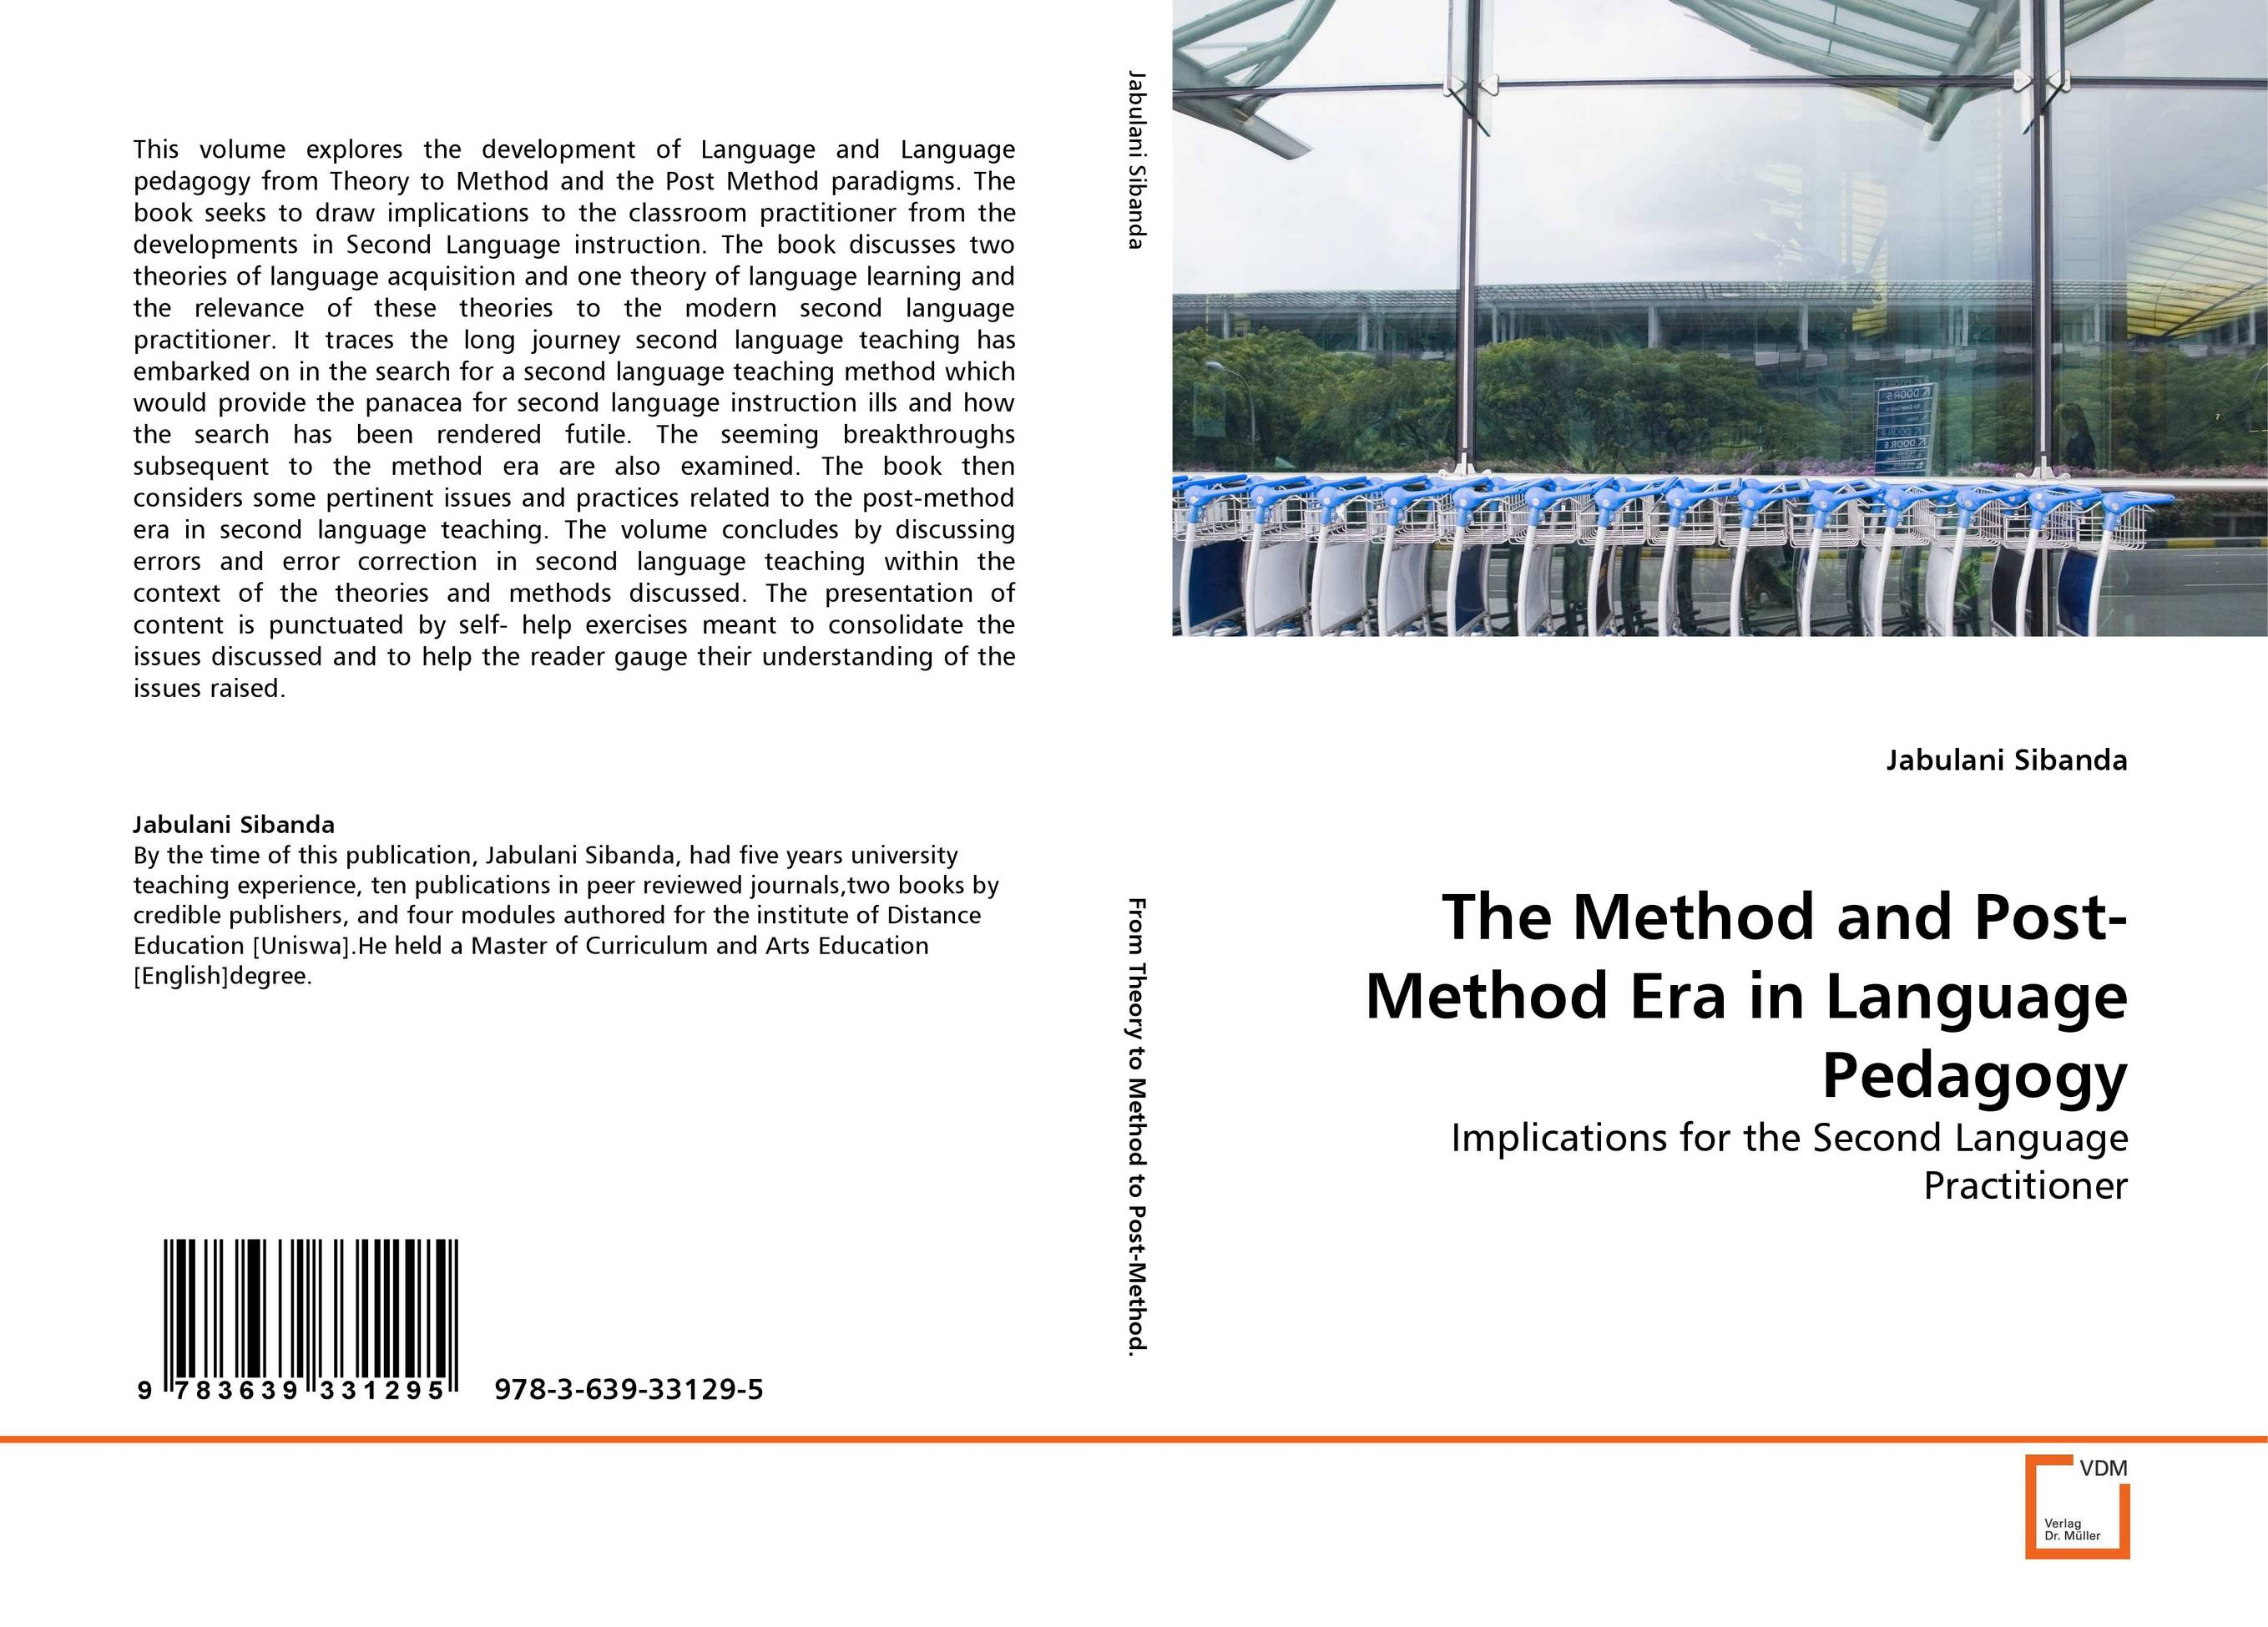 The Method and Post-Method Era in Language Pedagogy raja abhilash punagoti and venkateshwar rao jupally introduction to analytical method development and validation